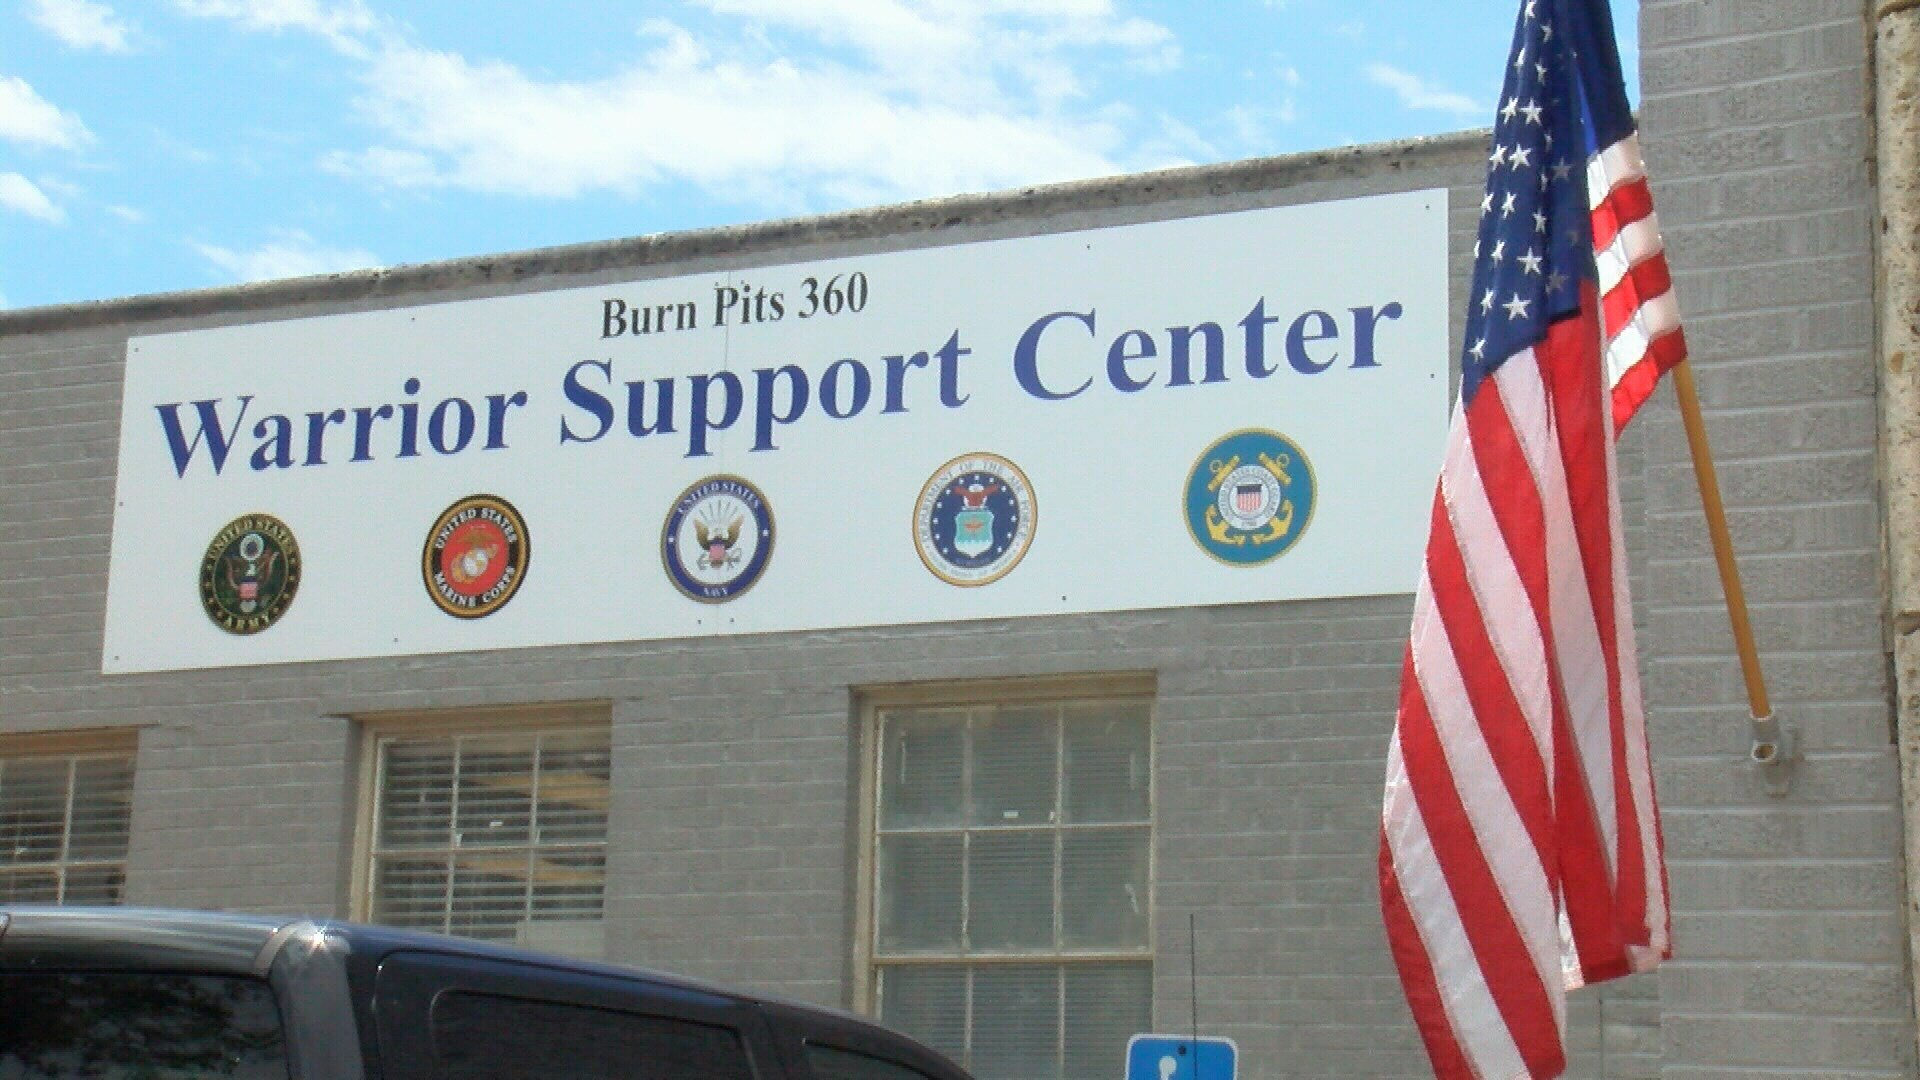 The Warrior Support Center in Robstown opened its doors less than a month ago, but it has already been targeted by a burglar.